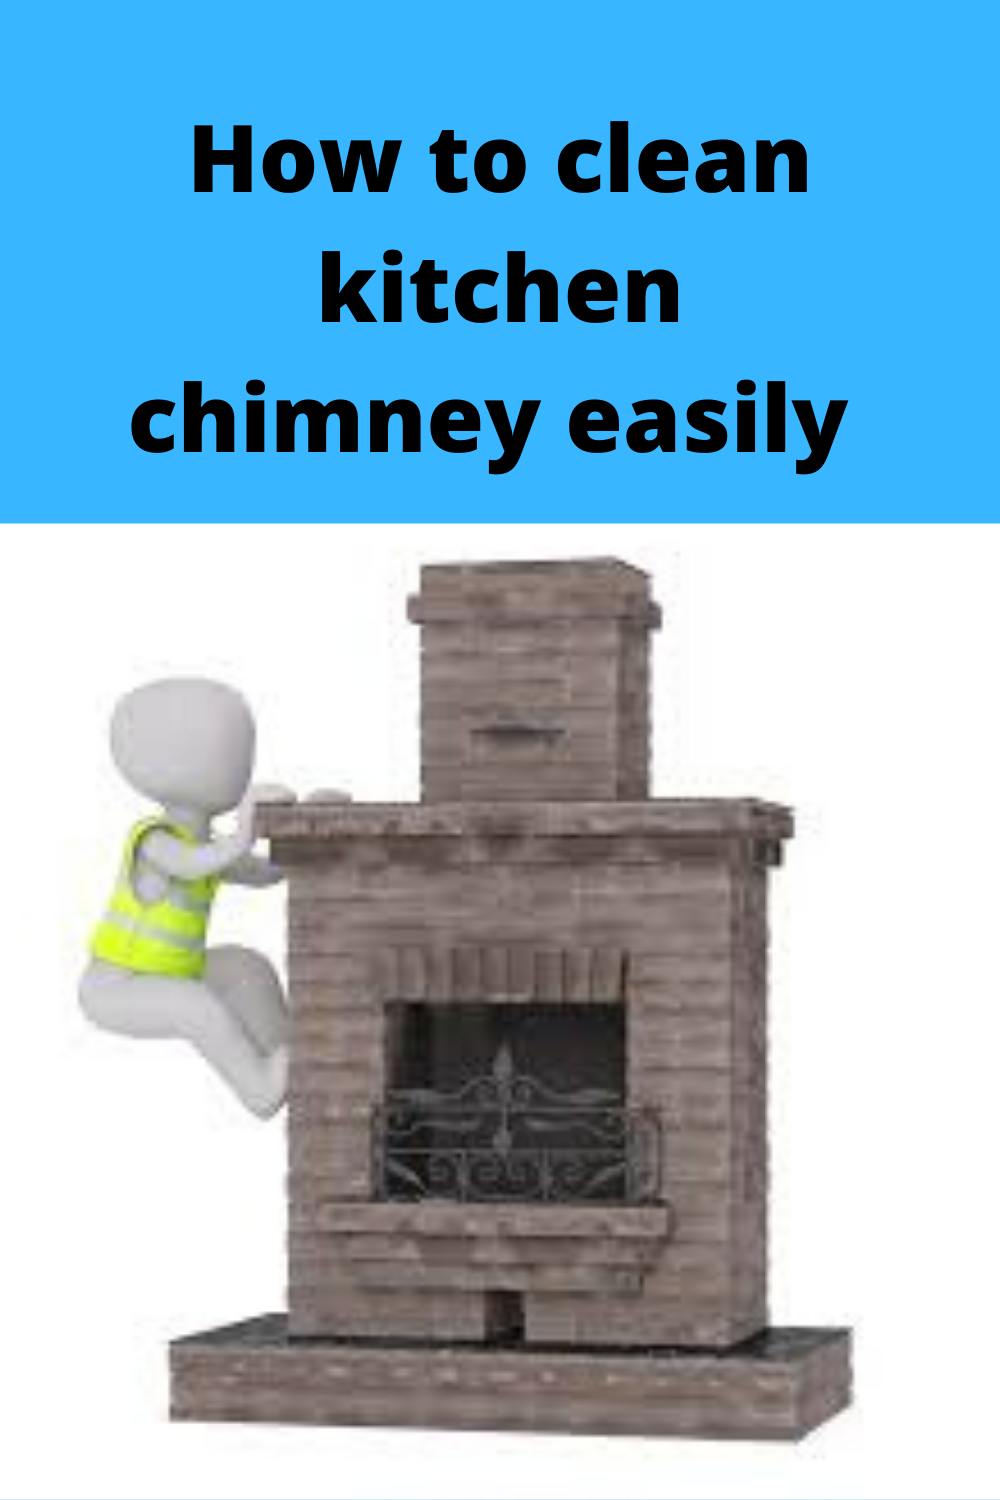 How To Clean Kitchen Chimney At Home 2020 In 2020 Kitchen Chimney Clean Kitchen Kitchen